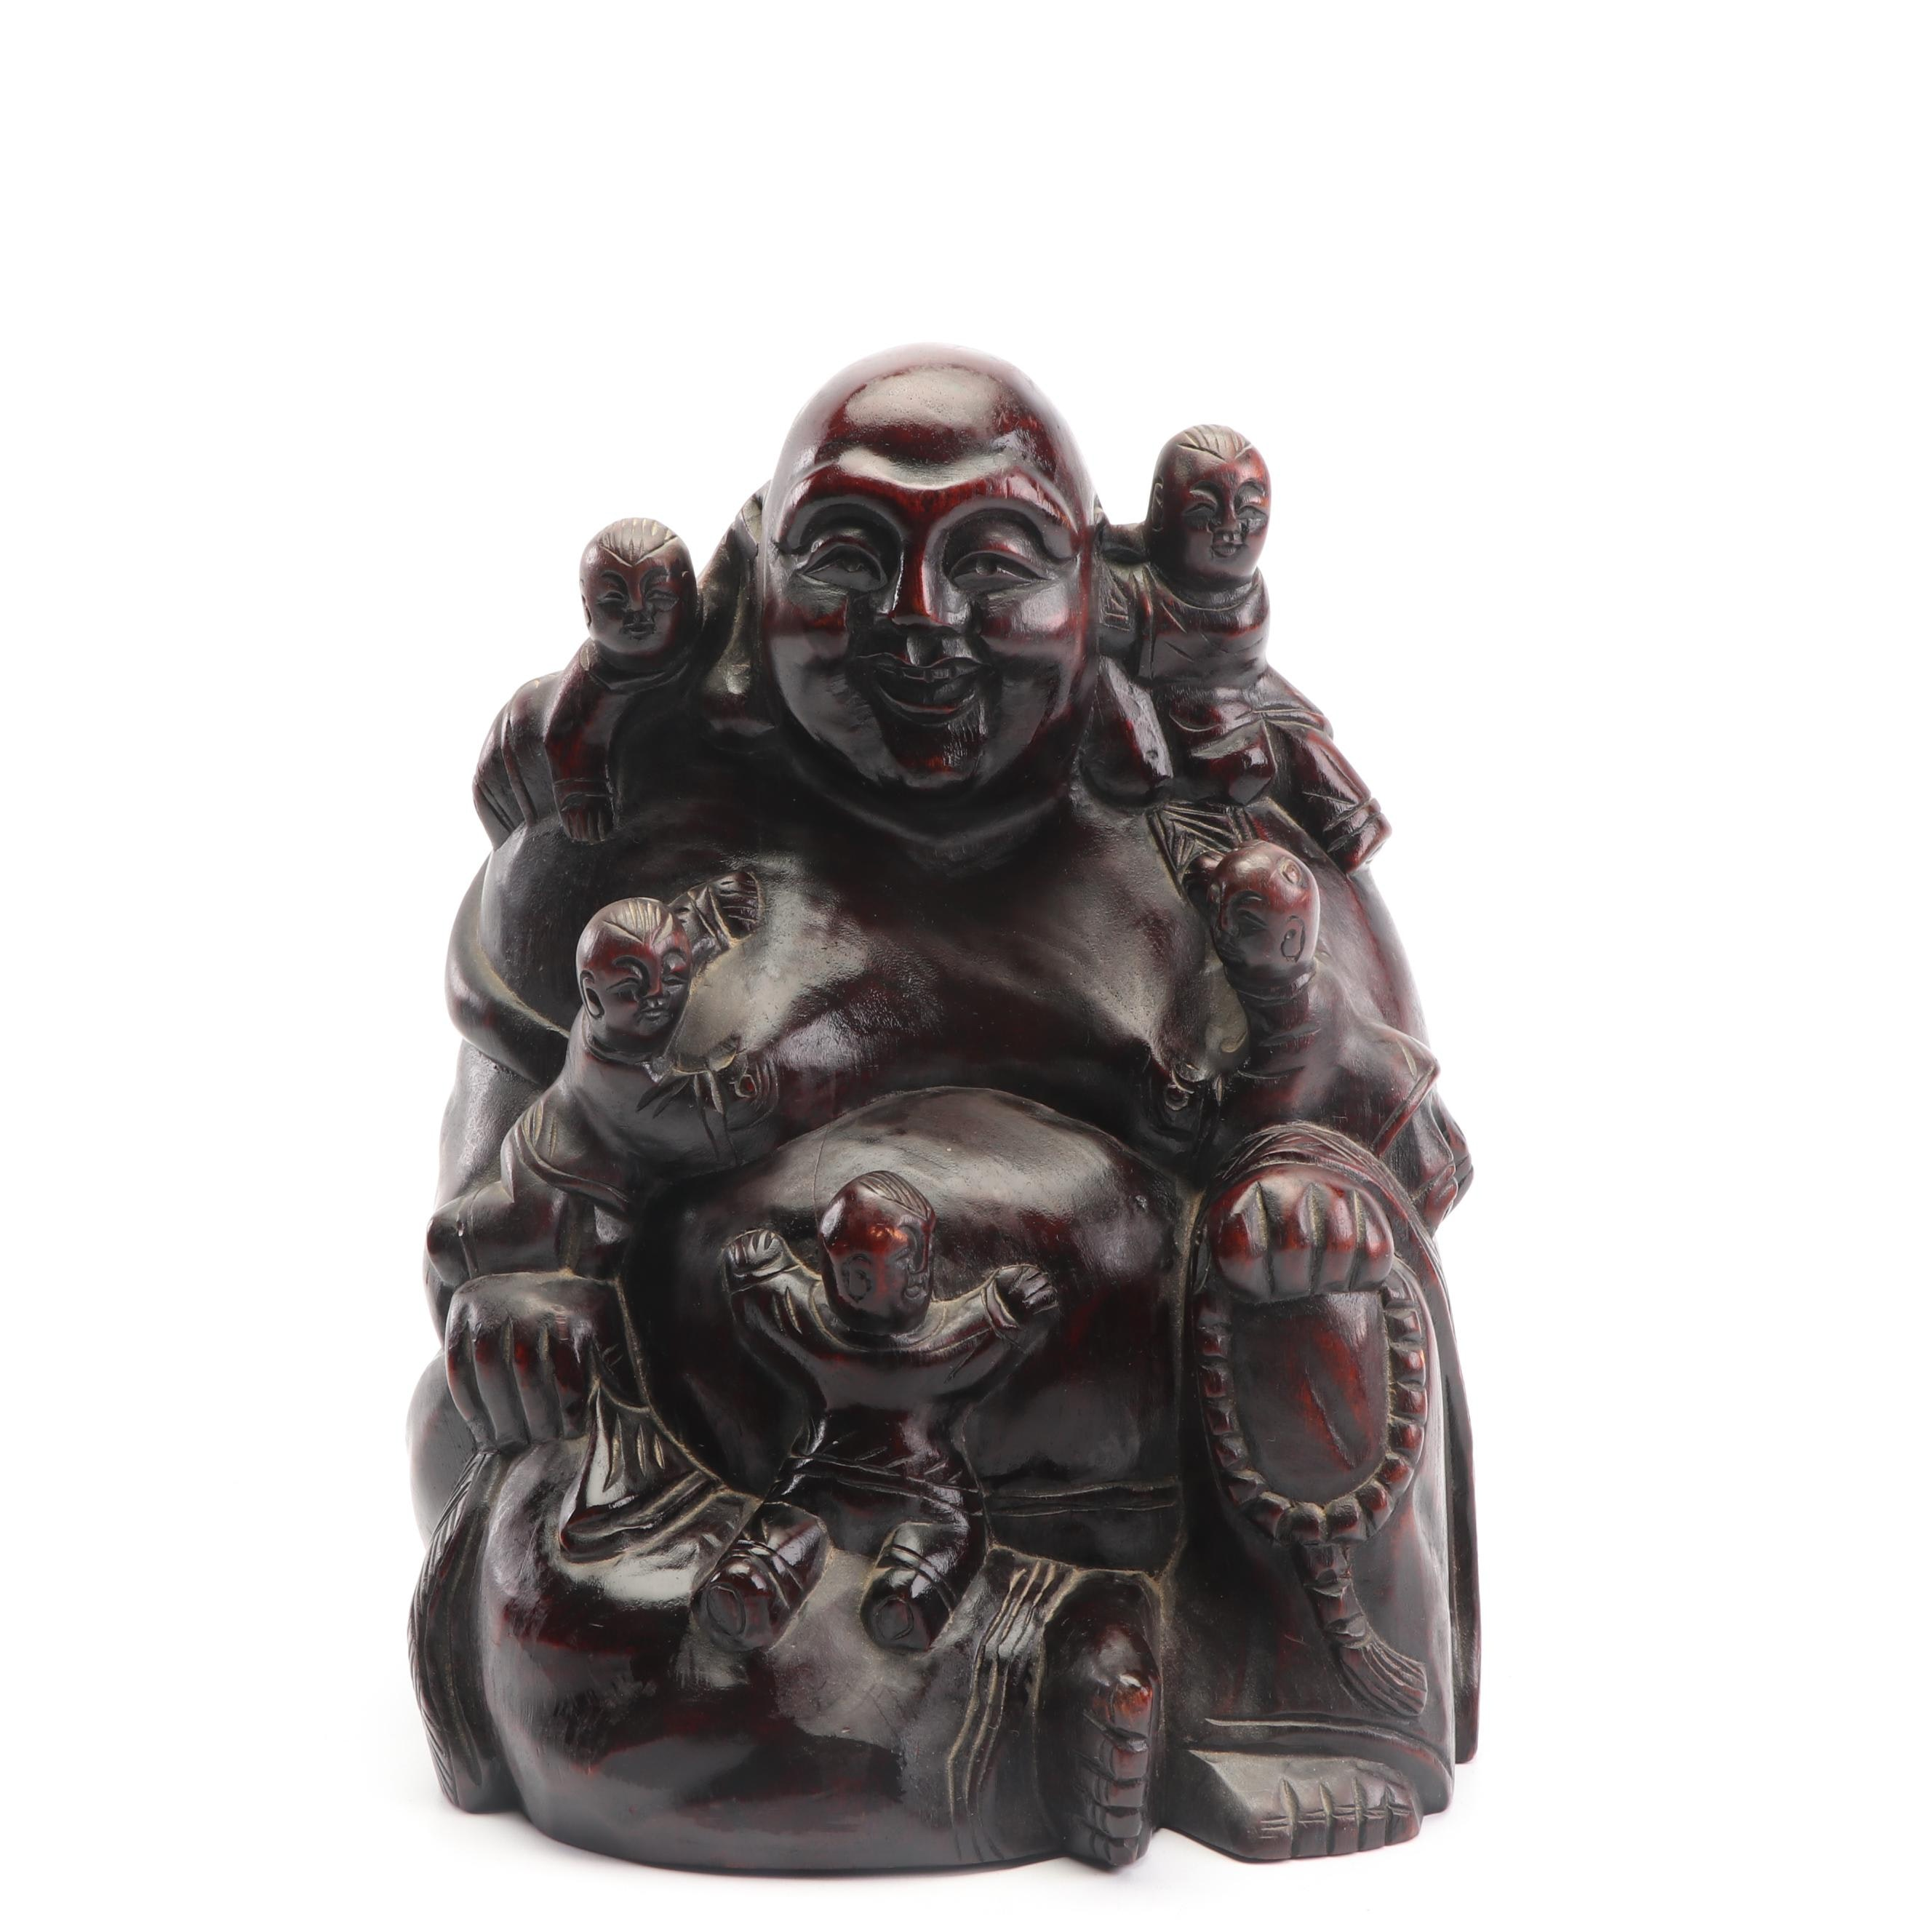 Chinese Carved Wood Budai with Children Sculpture